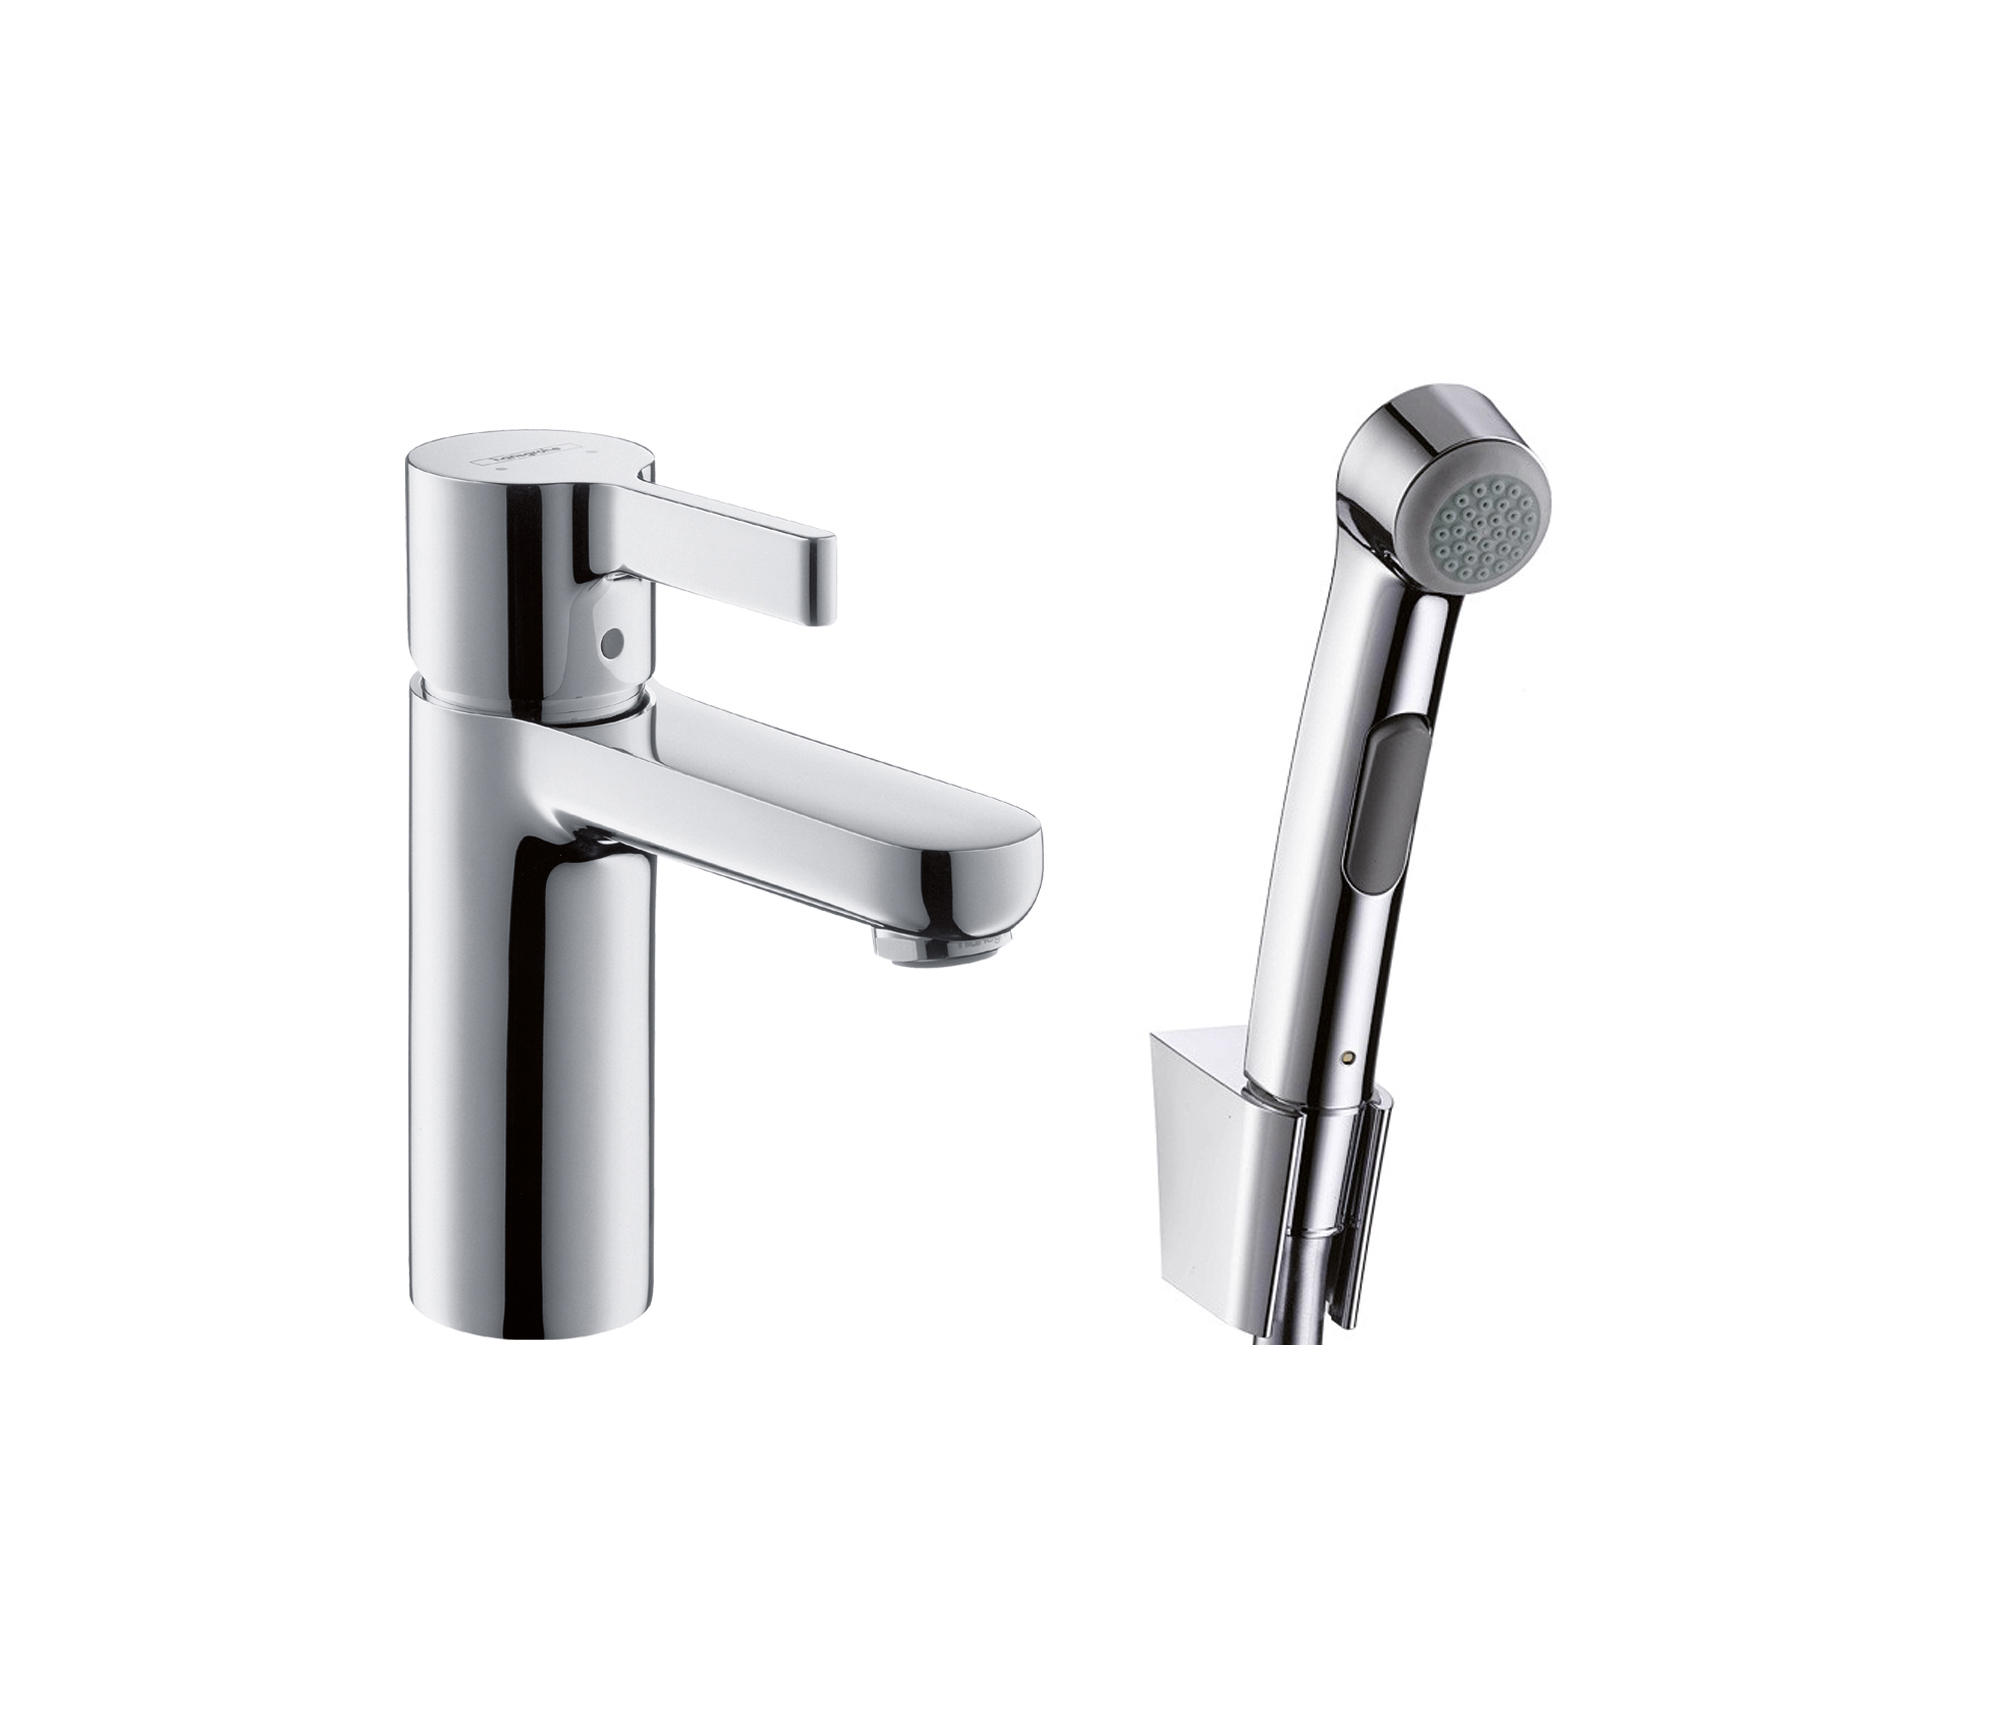 hansgrohe metris s bidette set dn15 bidet taps from. Black Bedroom Furniture Sets. Home Design Ideas